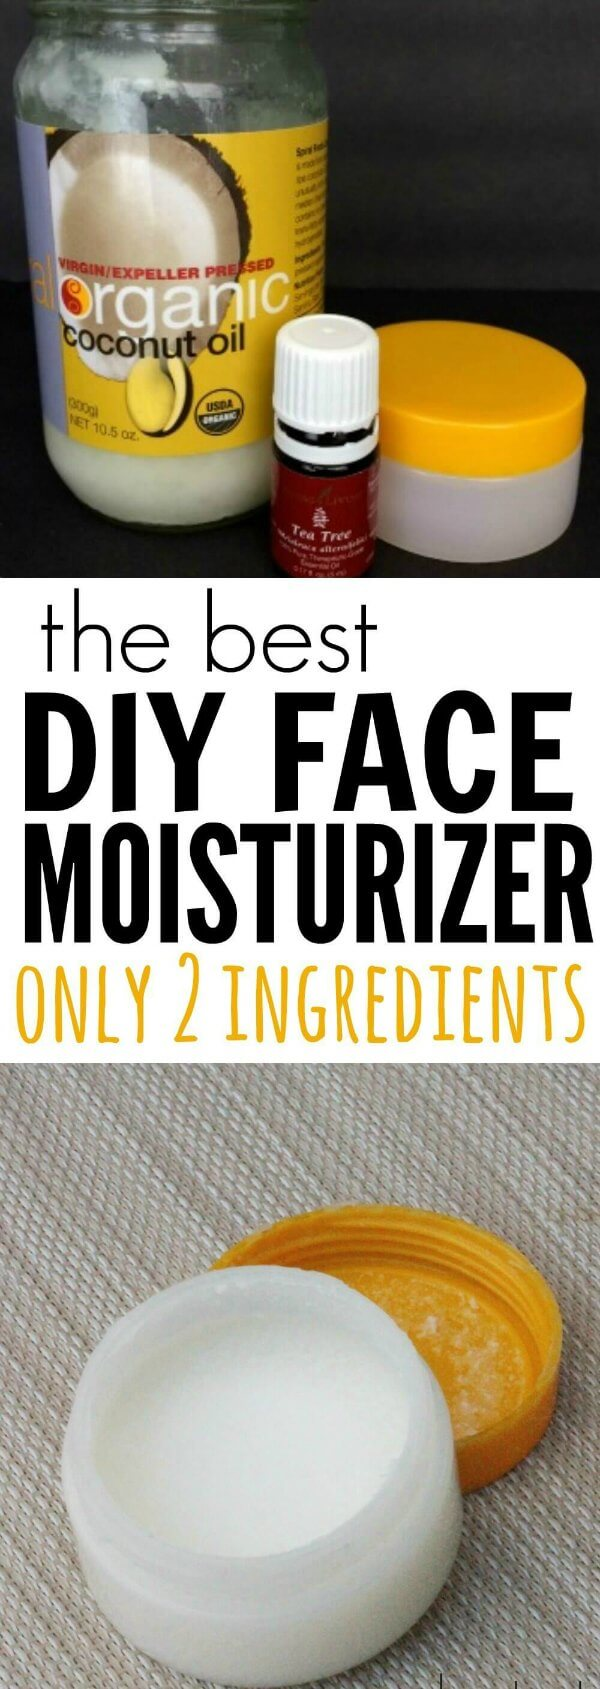 You are going to love this DIY face moisturizer. With only 2 ingredients anyone can make this DIY face cream. I promise you are going to love this easy and frugal DIY moisturizer. It is the best homemade face moisturizer. Try this homemade moisturizer today!